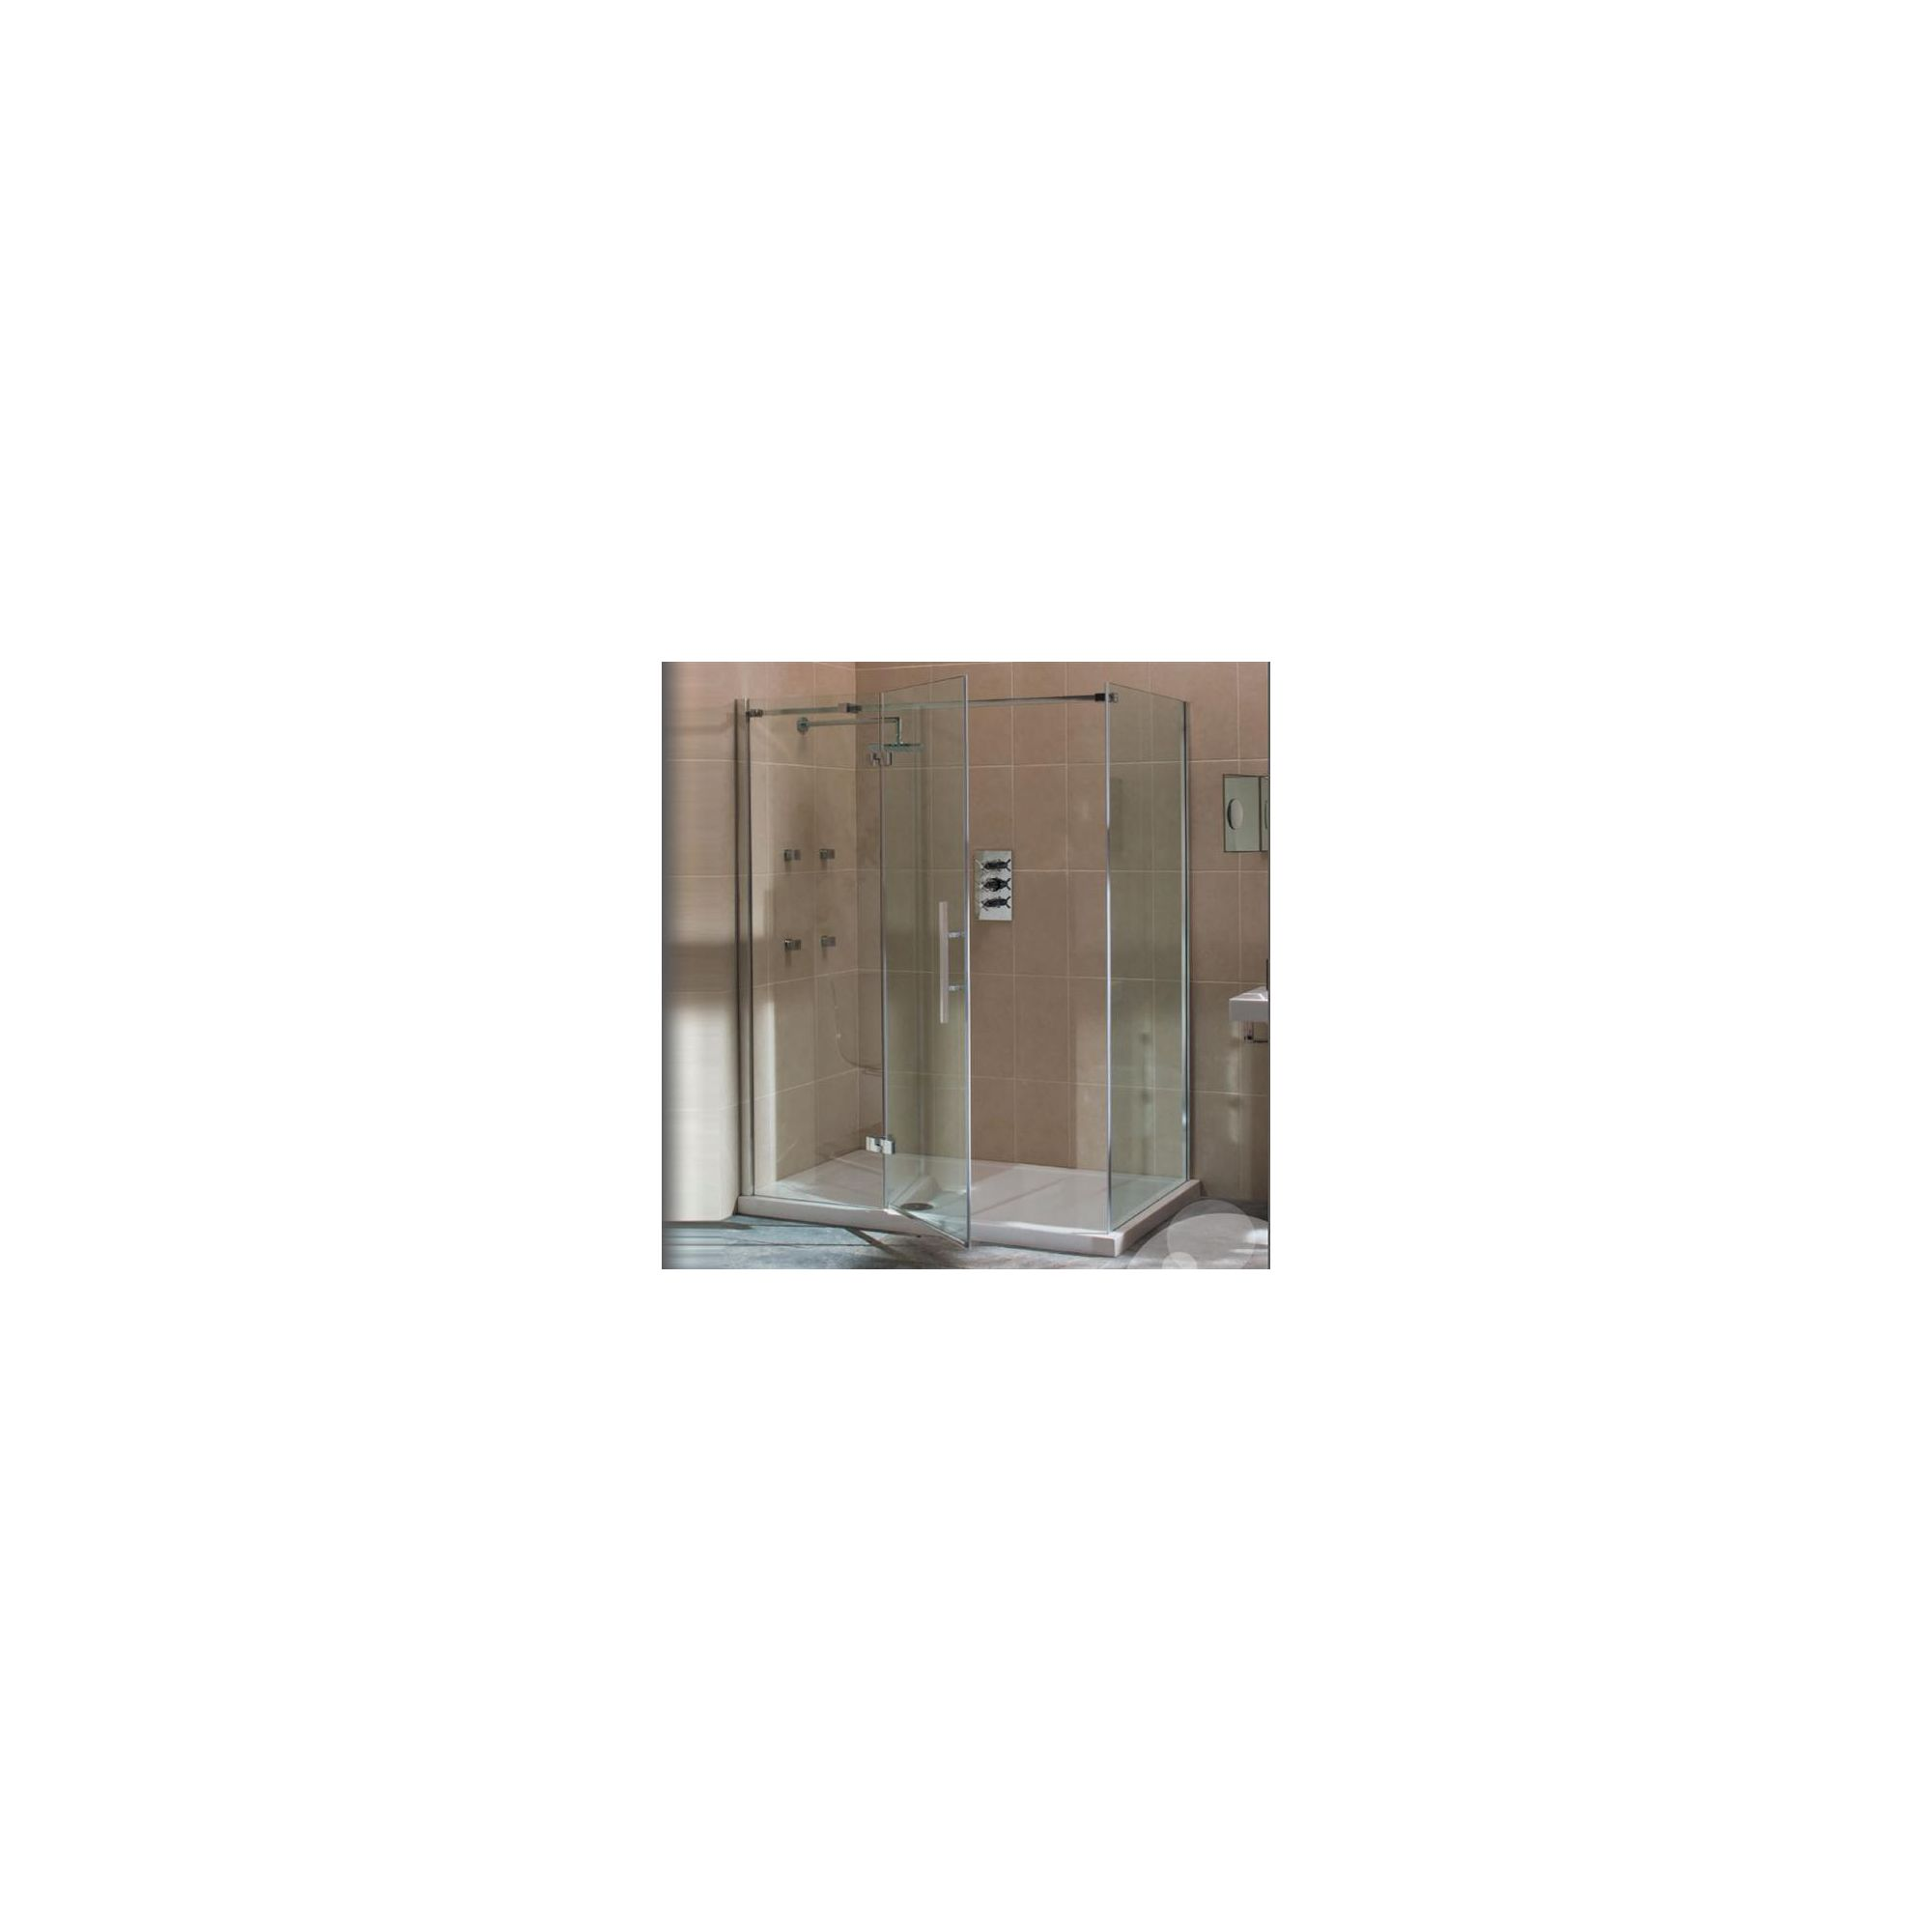 Merlyn Vivid Nine Hinged Door Shower Enclosure with Inline Panel, 1600mm x 800mm, Left Handed, Low Profile Tray, 8mm Glass at Tescos Direct